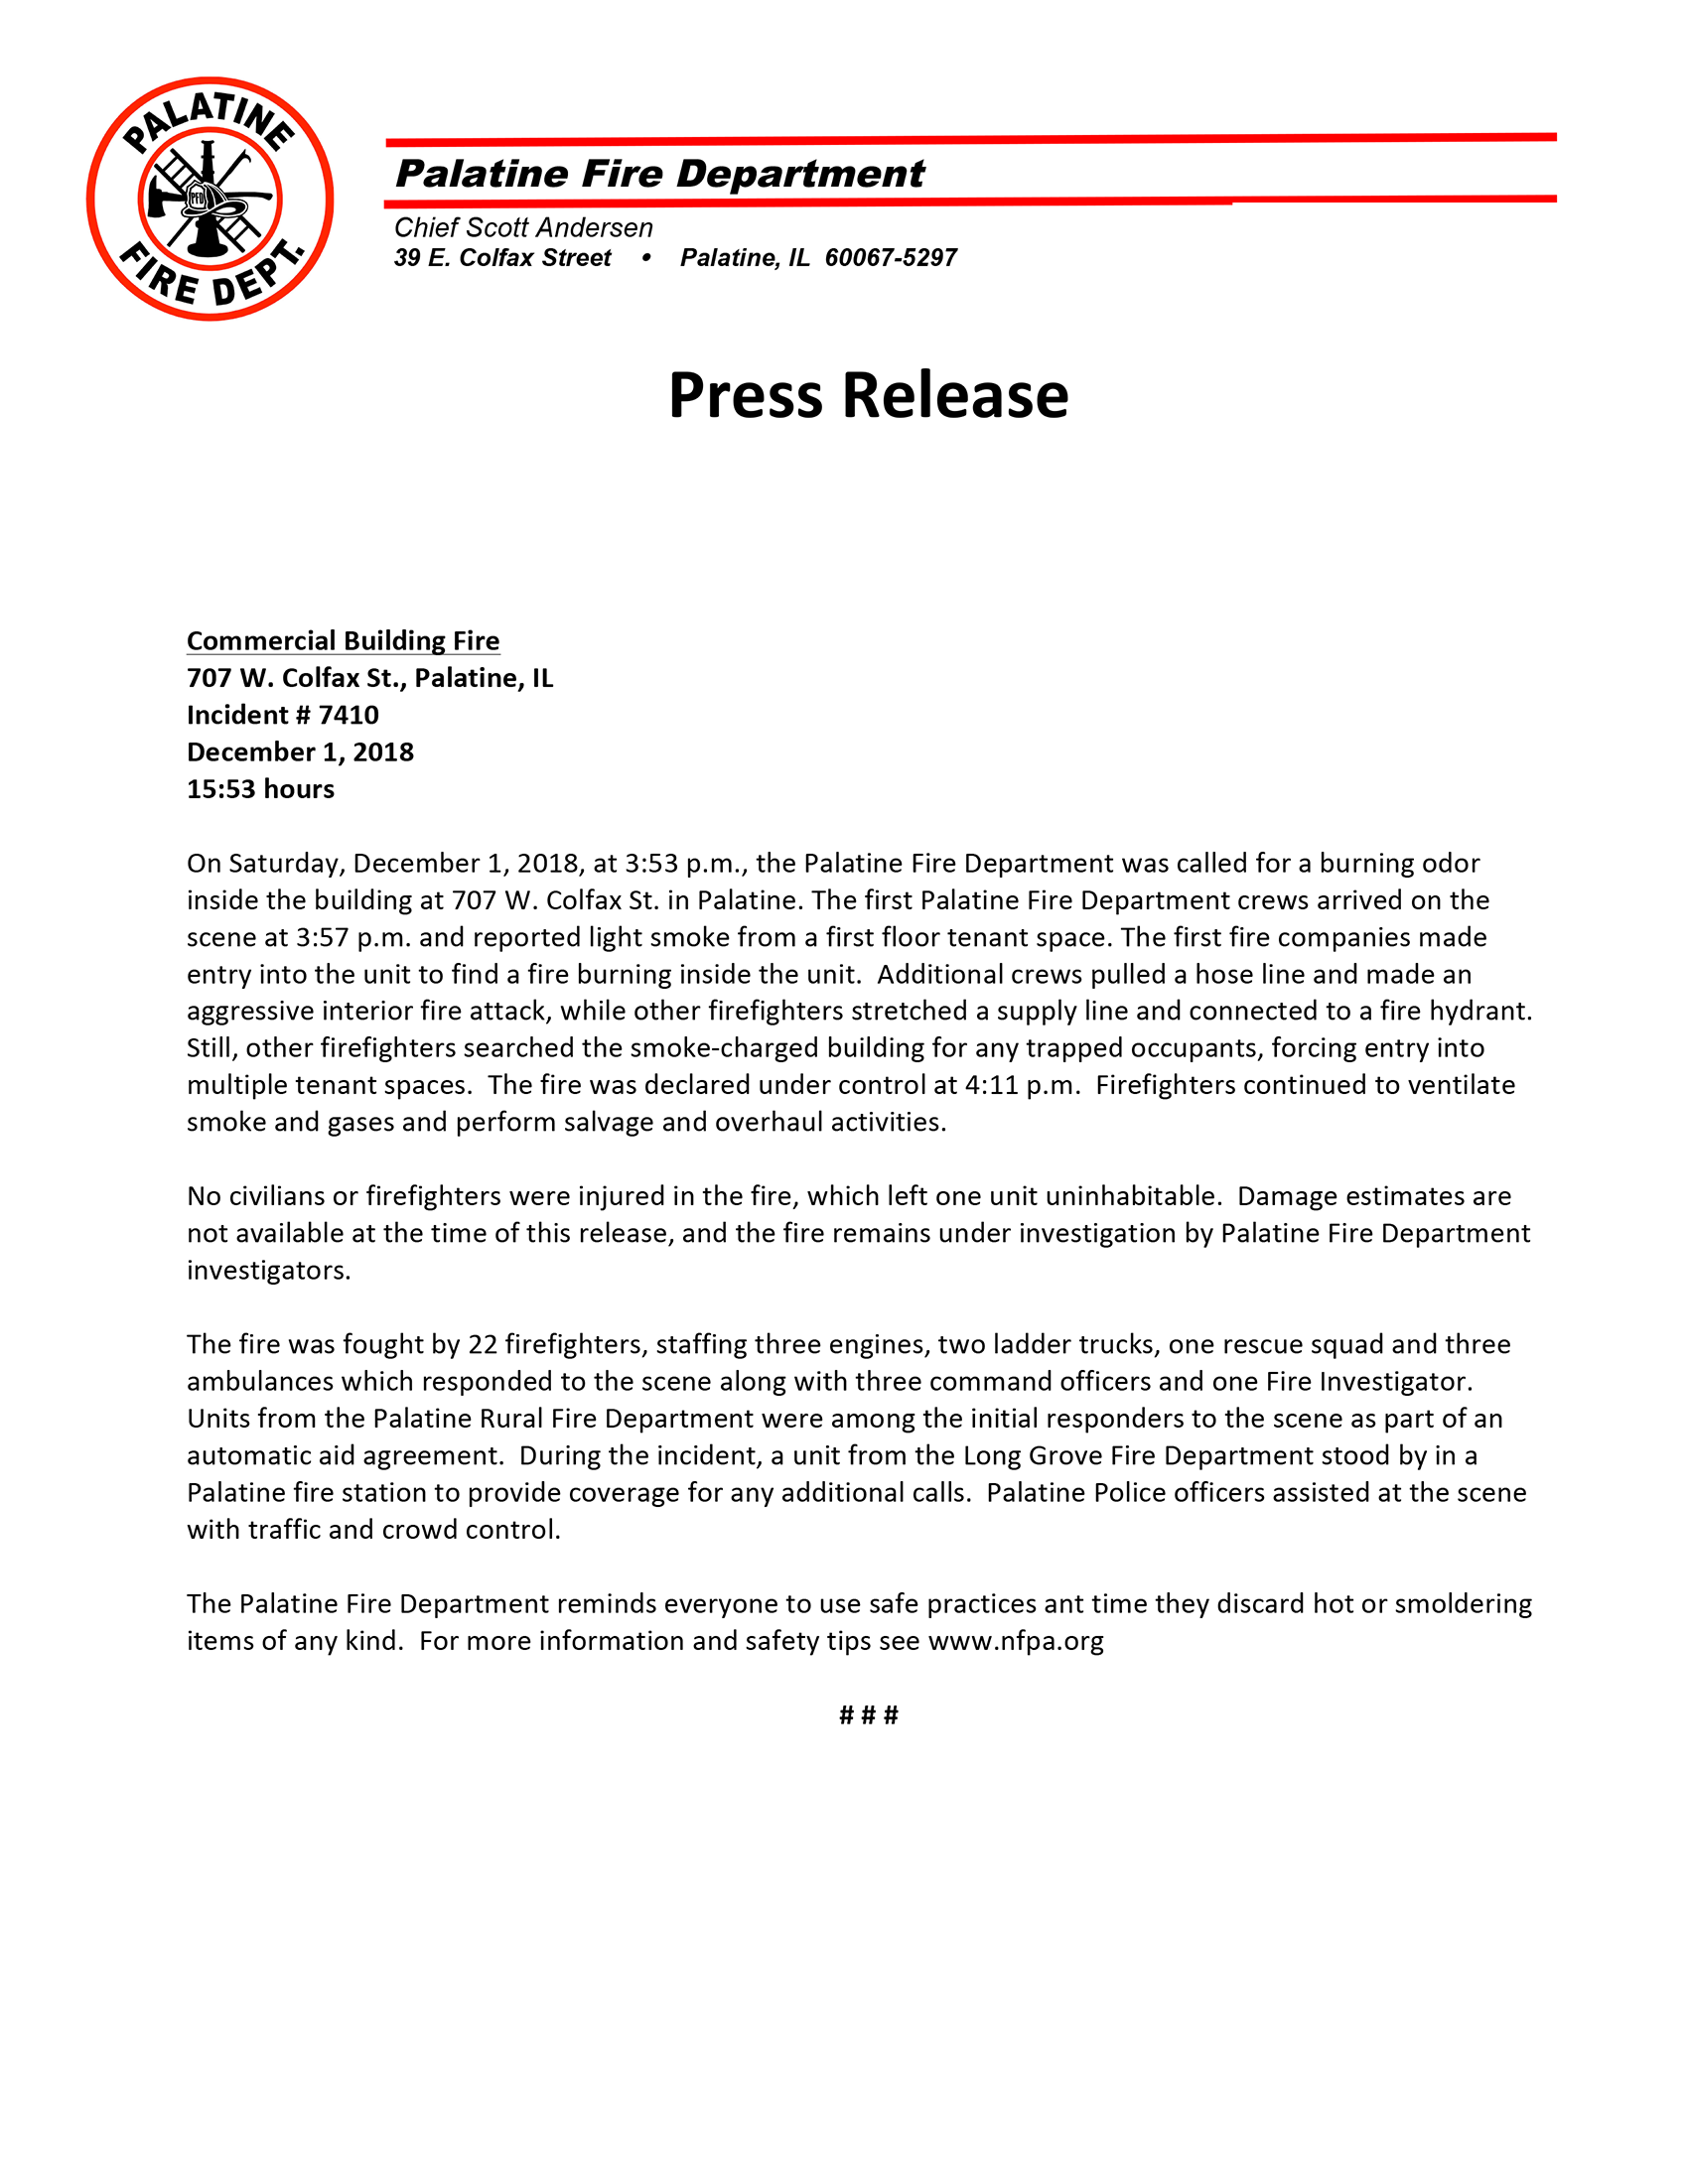 Palatine Fire Department press release